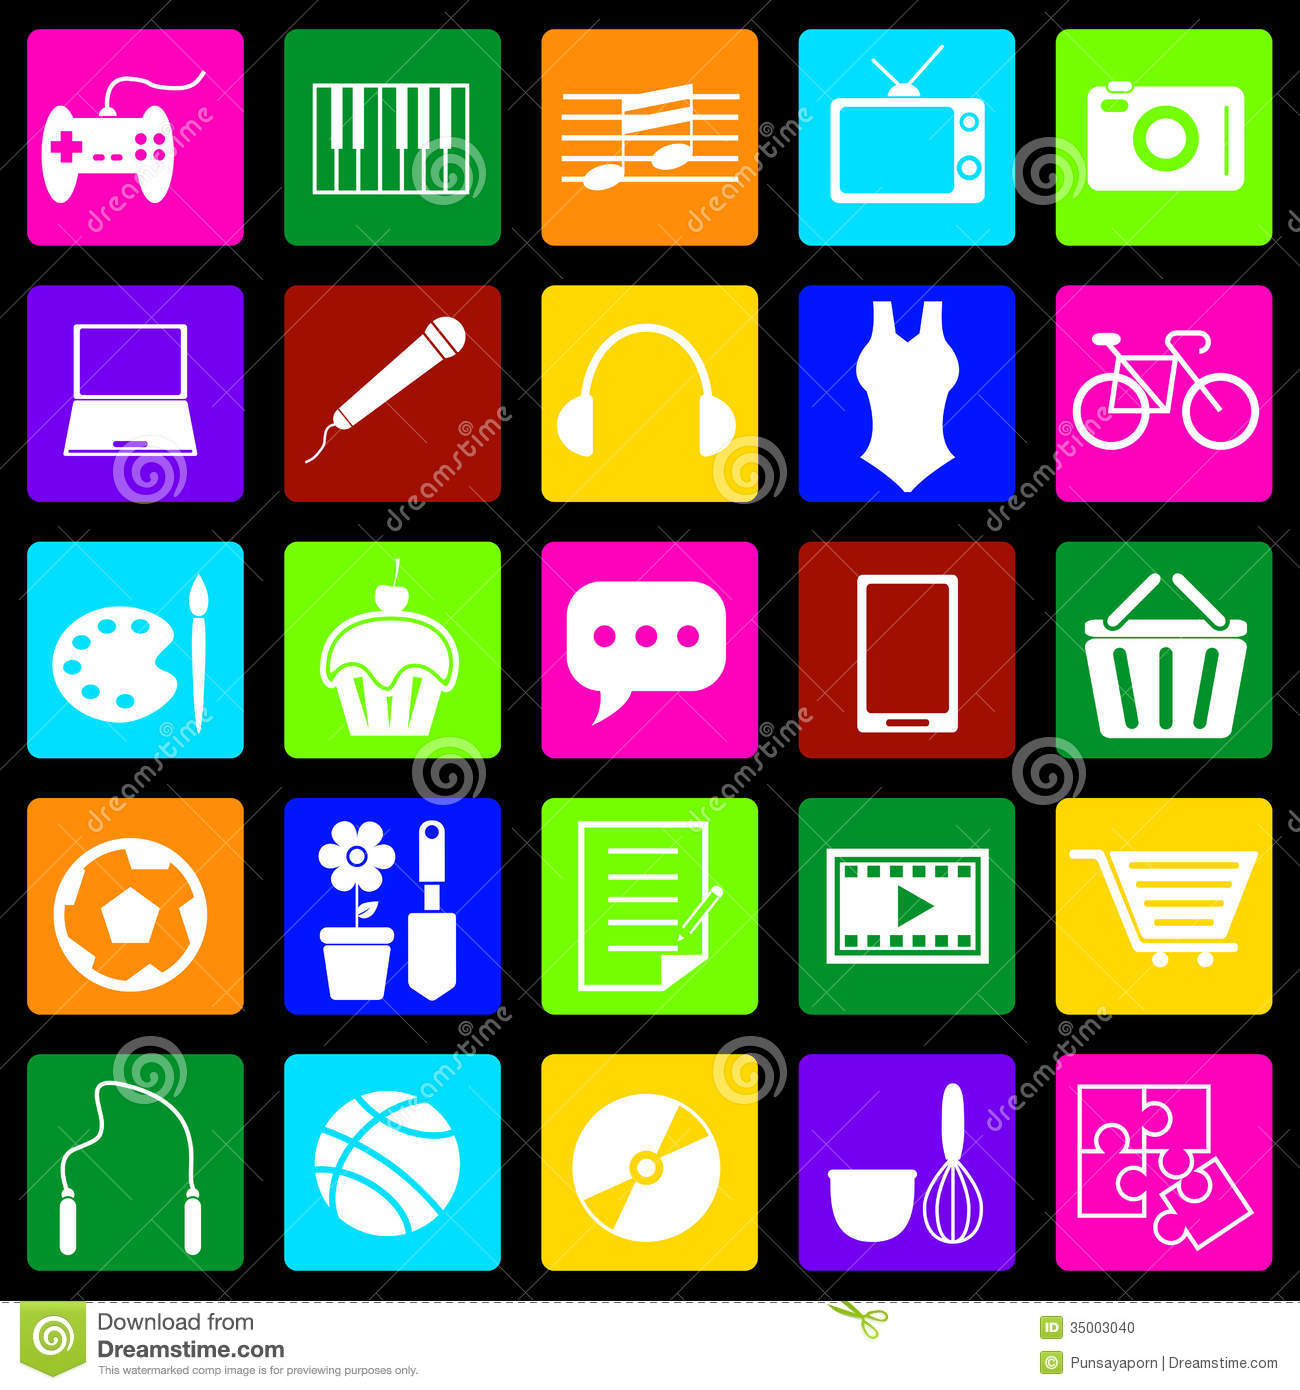 hobby-colorful-icons-black-background-stock-vector-35003040.jpg